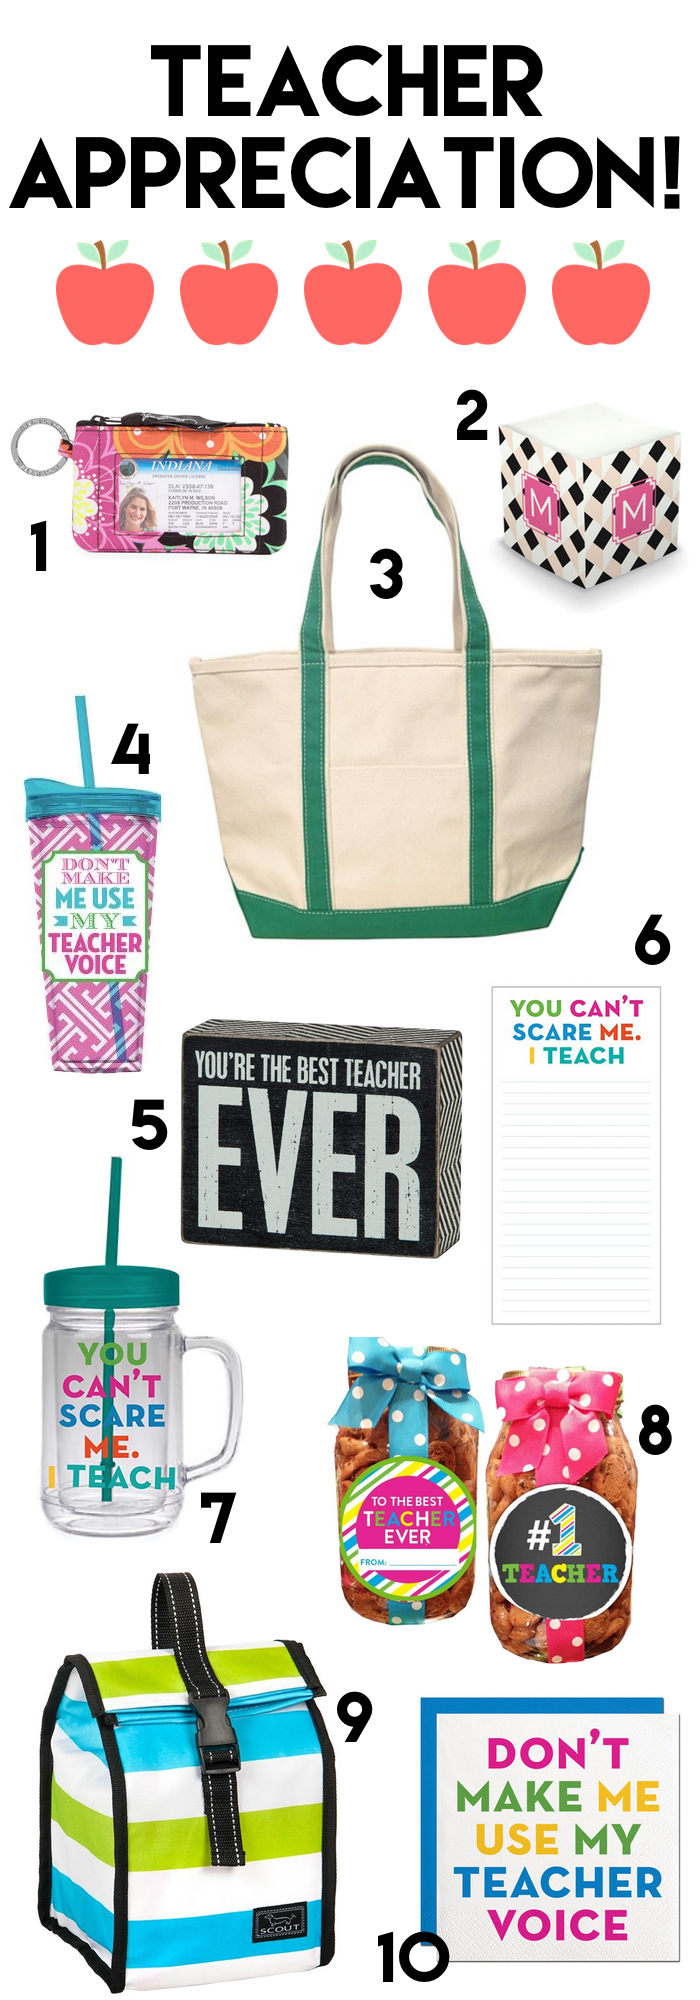 teacher_gift_ideas